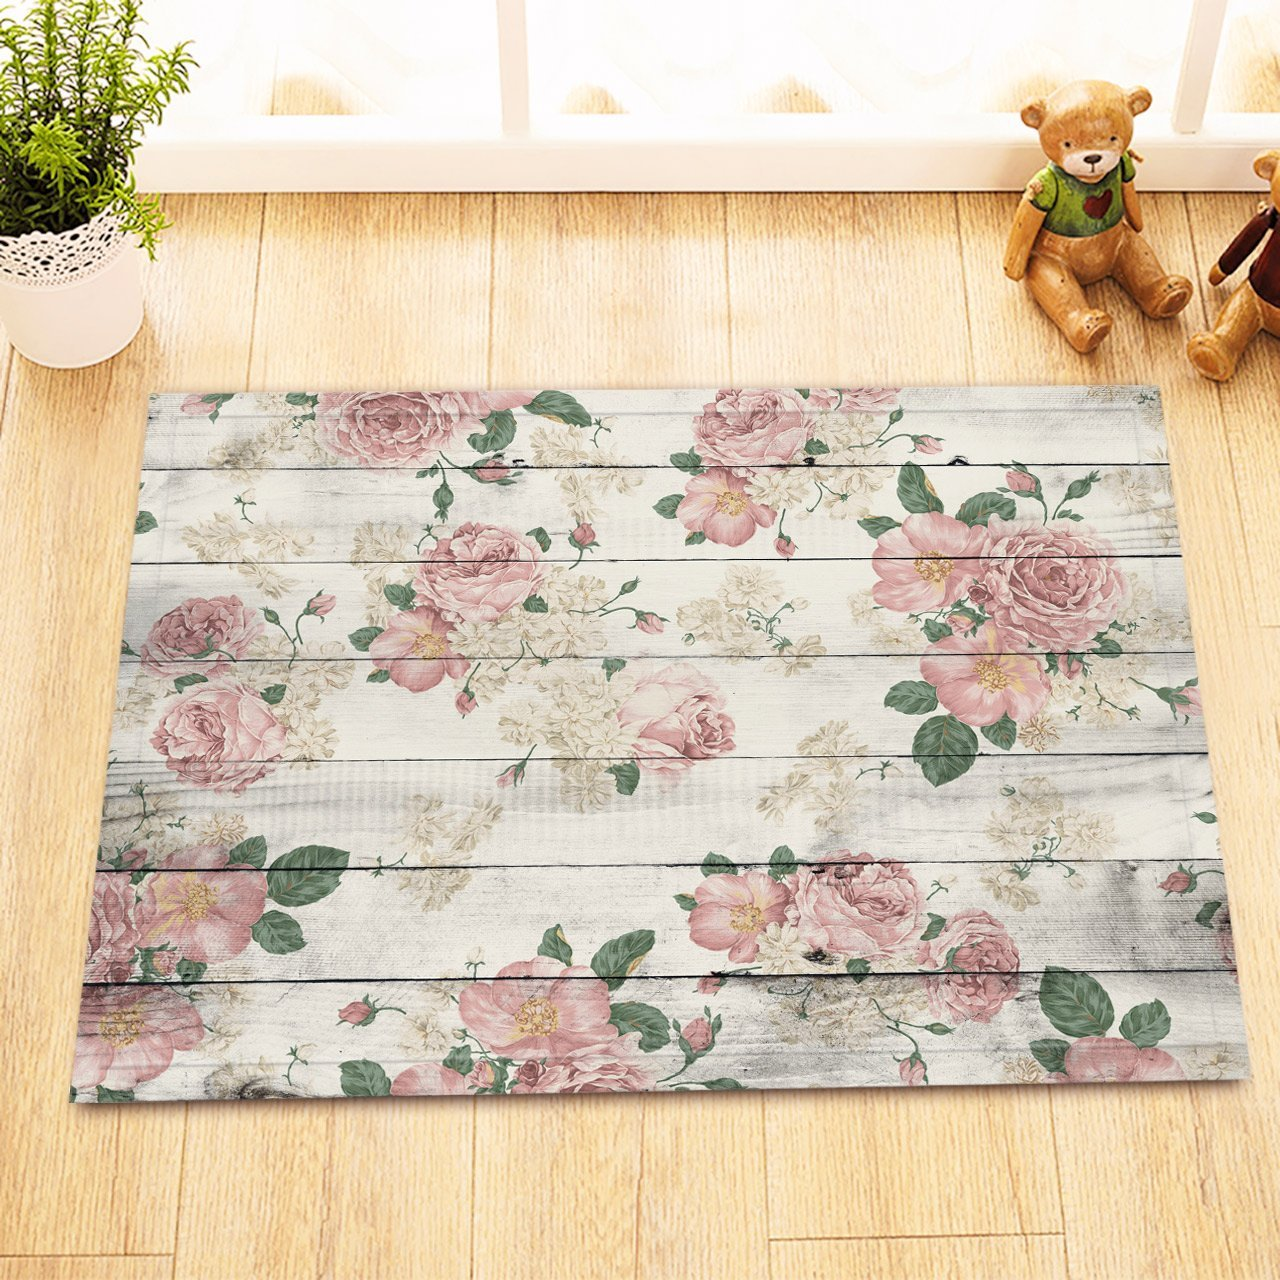 LB Pink Rose Bathroom Rug, Customized Rustic Flowers on Wood Panel Non-slip Bathroom Rugs and Mats 16 x 24 Inch